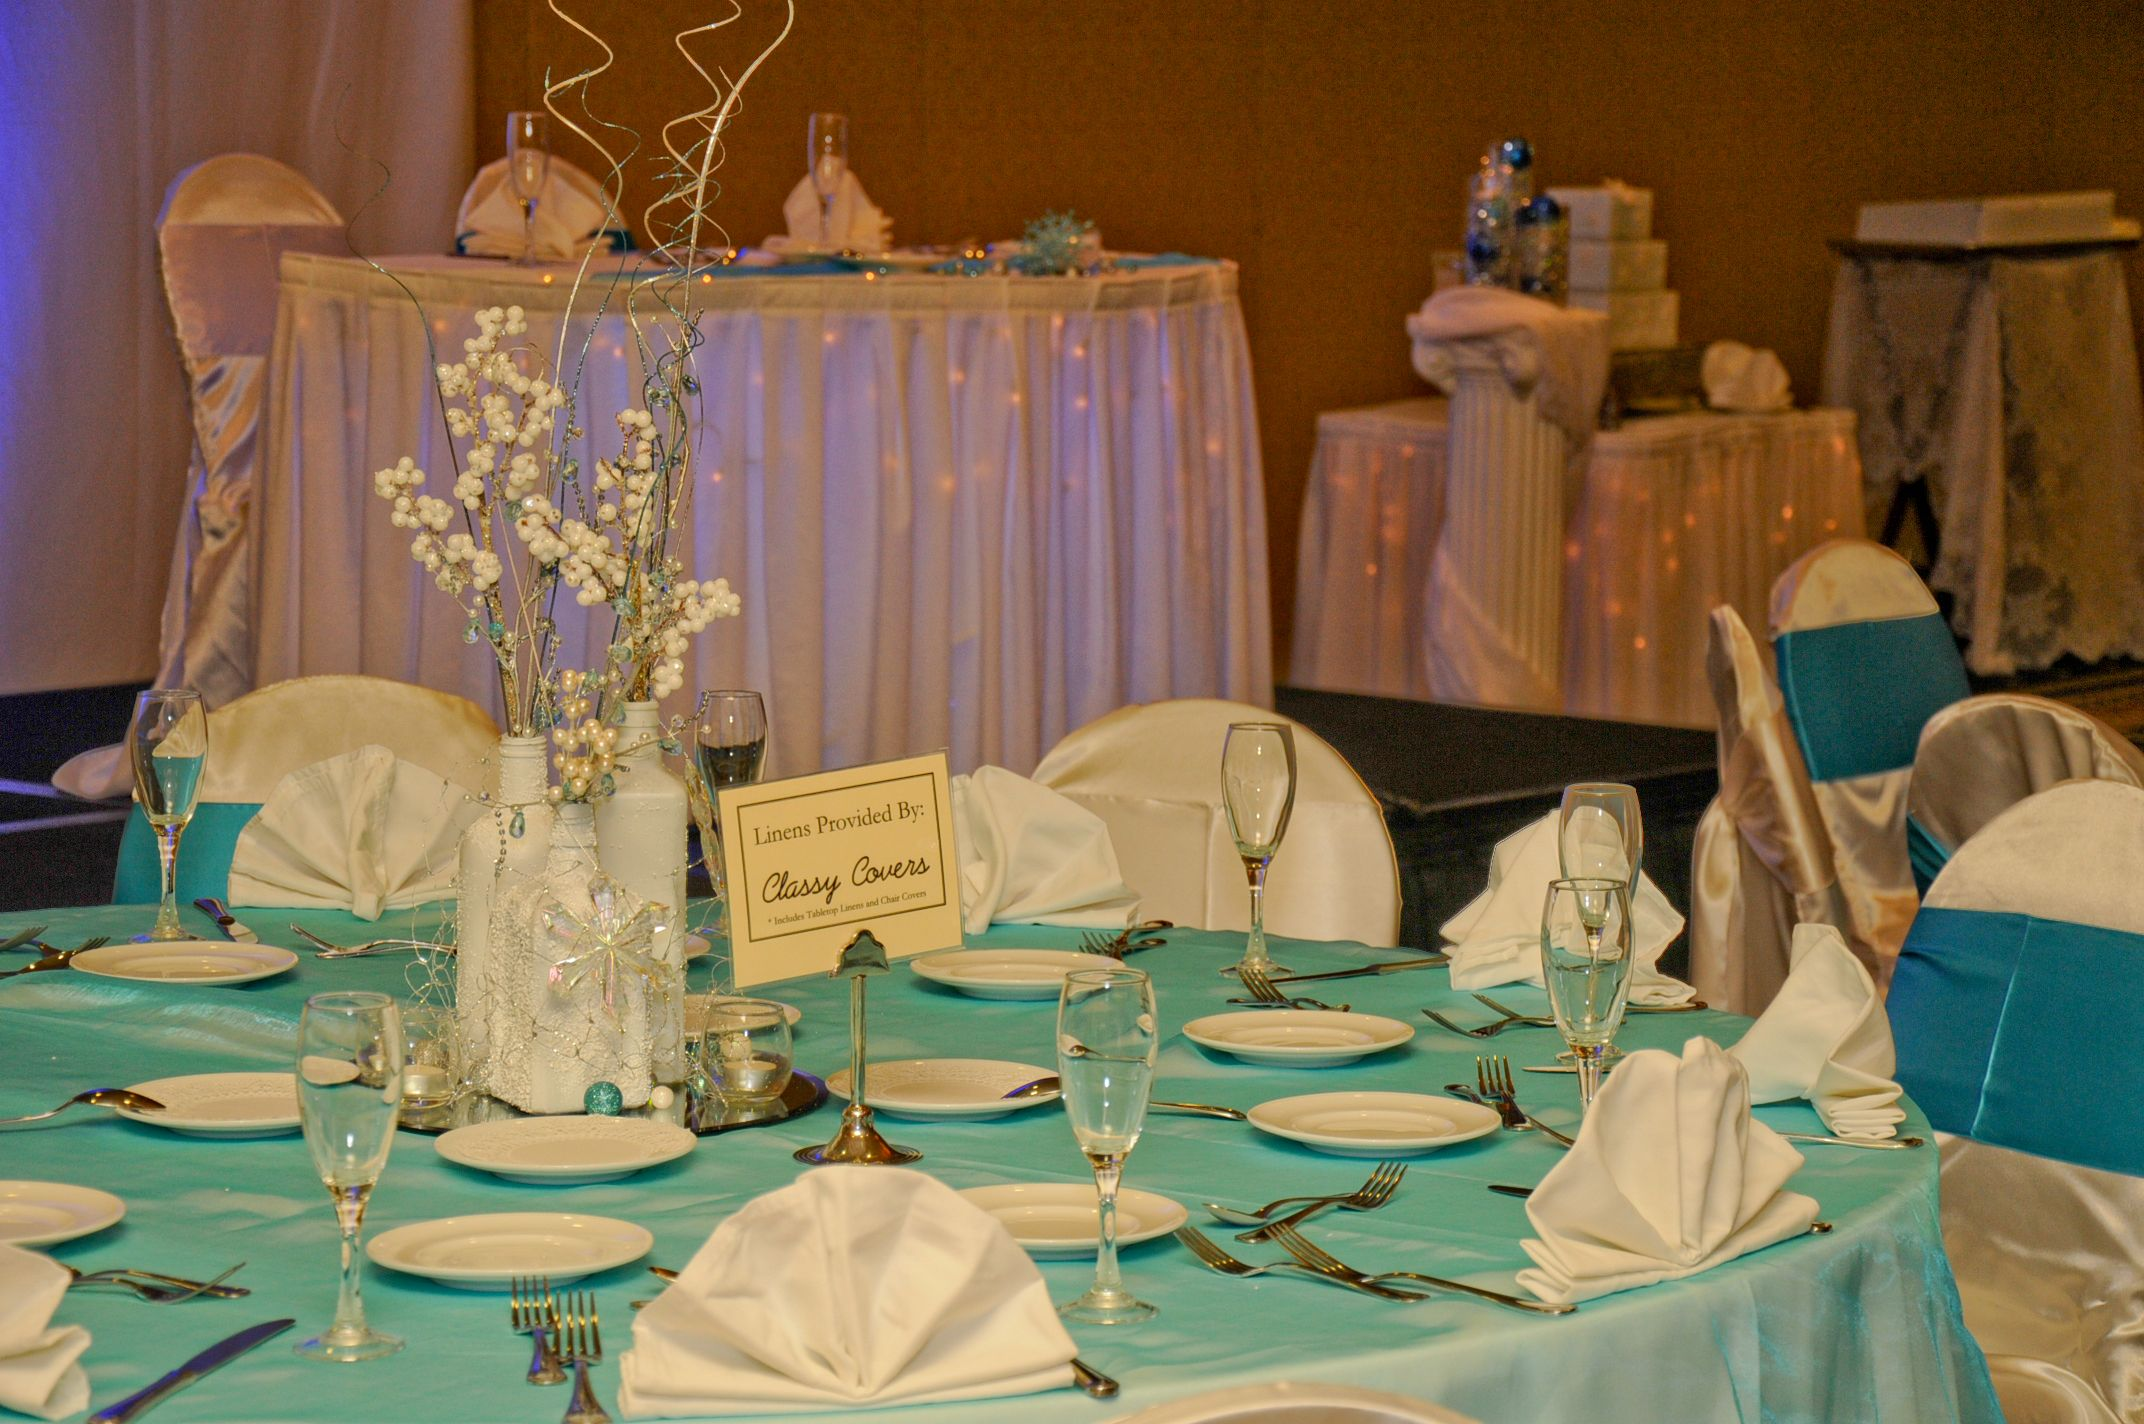 Beautiful table set by Classy Covers at the Wyndham Gettysburg.